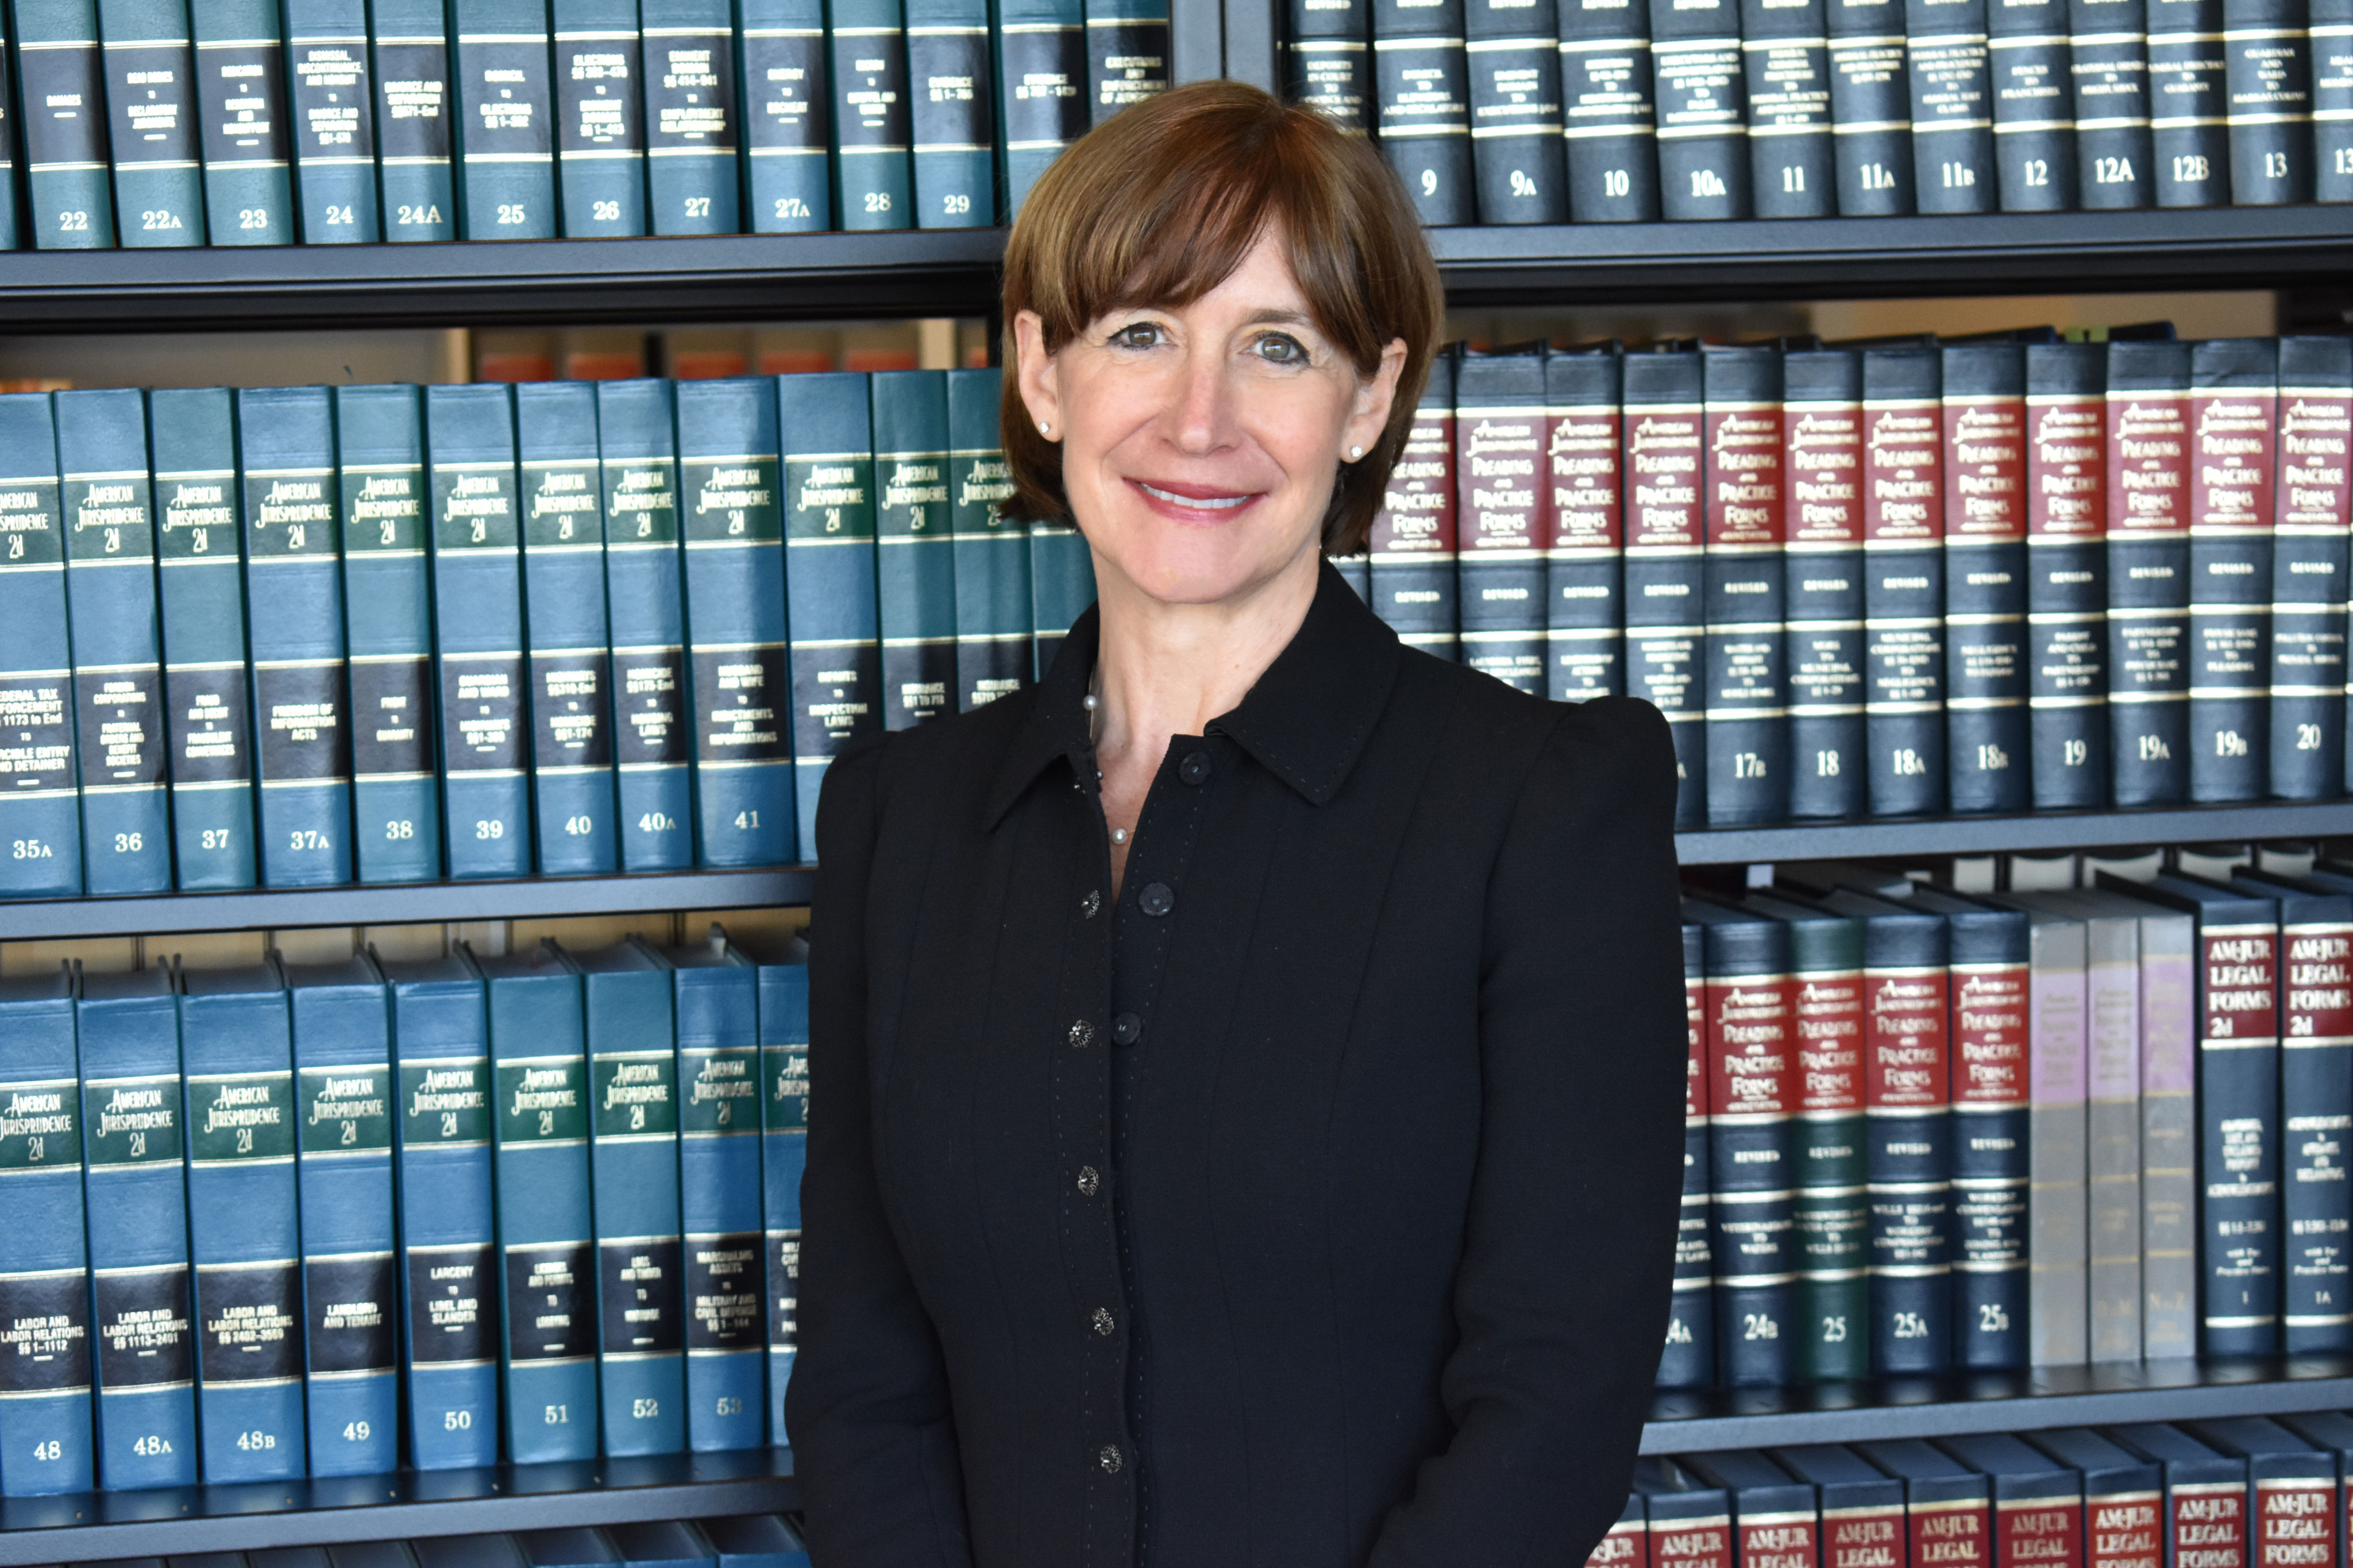 Named Influential Women of Law for 2019 by Virginia Lawyers Weekly